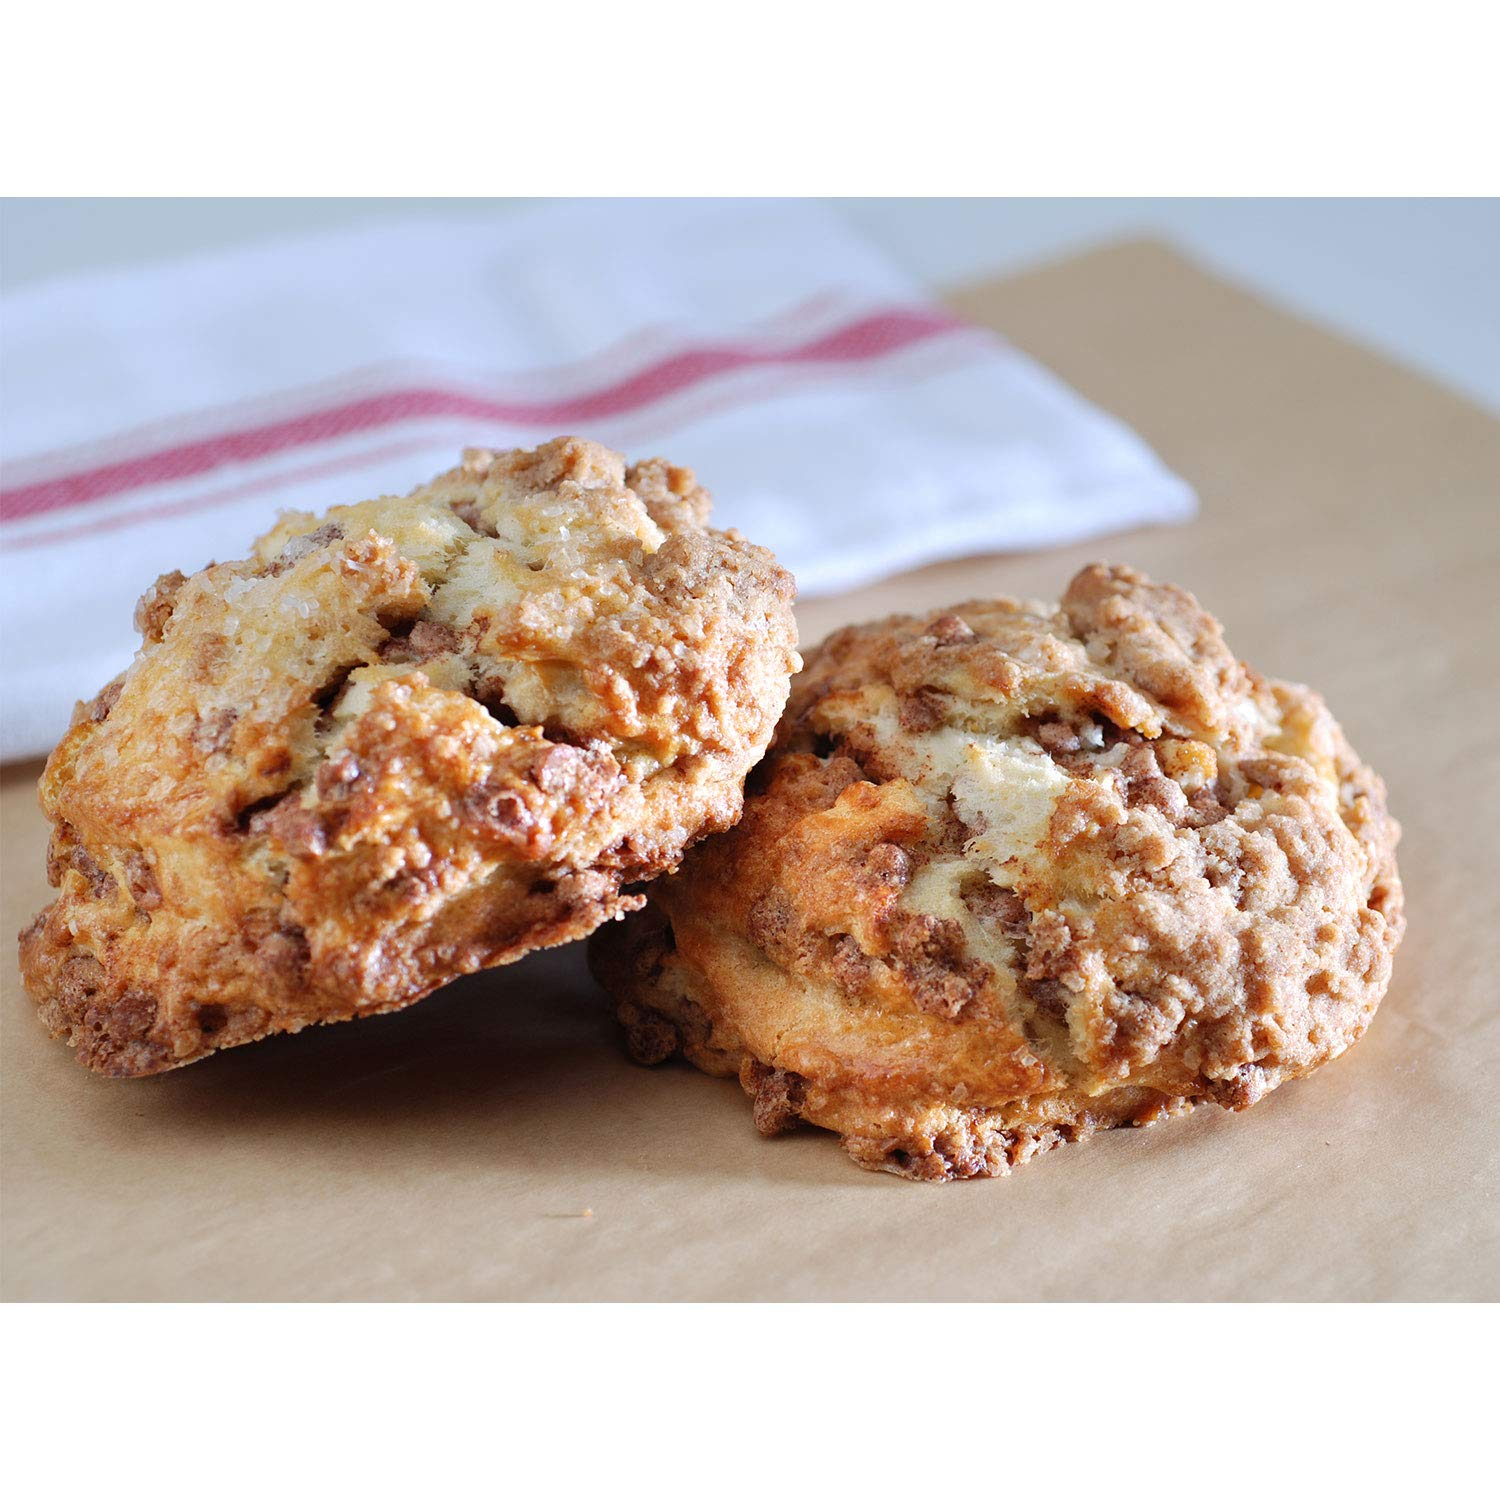 Poppie's Dough Fresh Baked Scone Basket 13 Pieces Max 72% OFF Ch Cinnamon OFFicial site